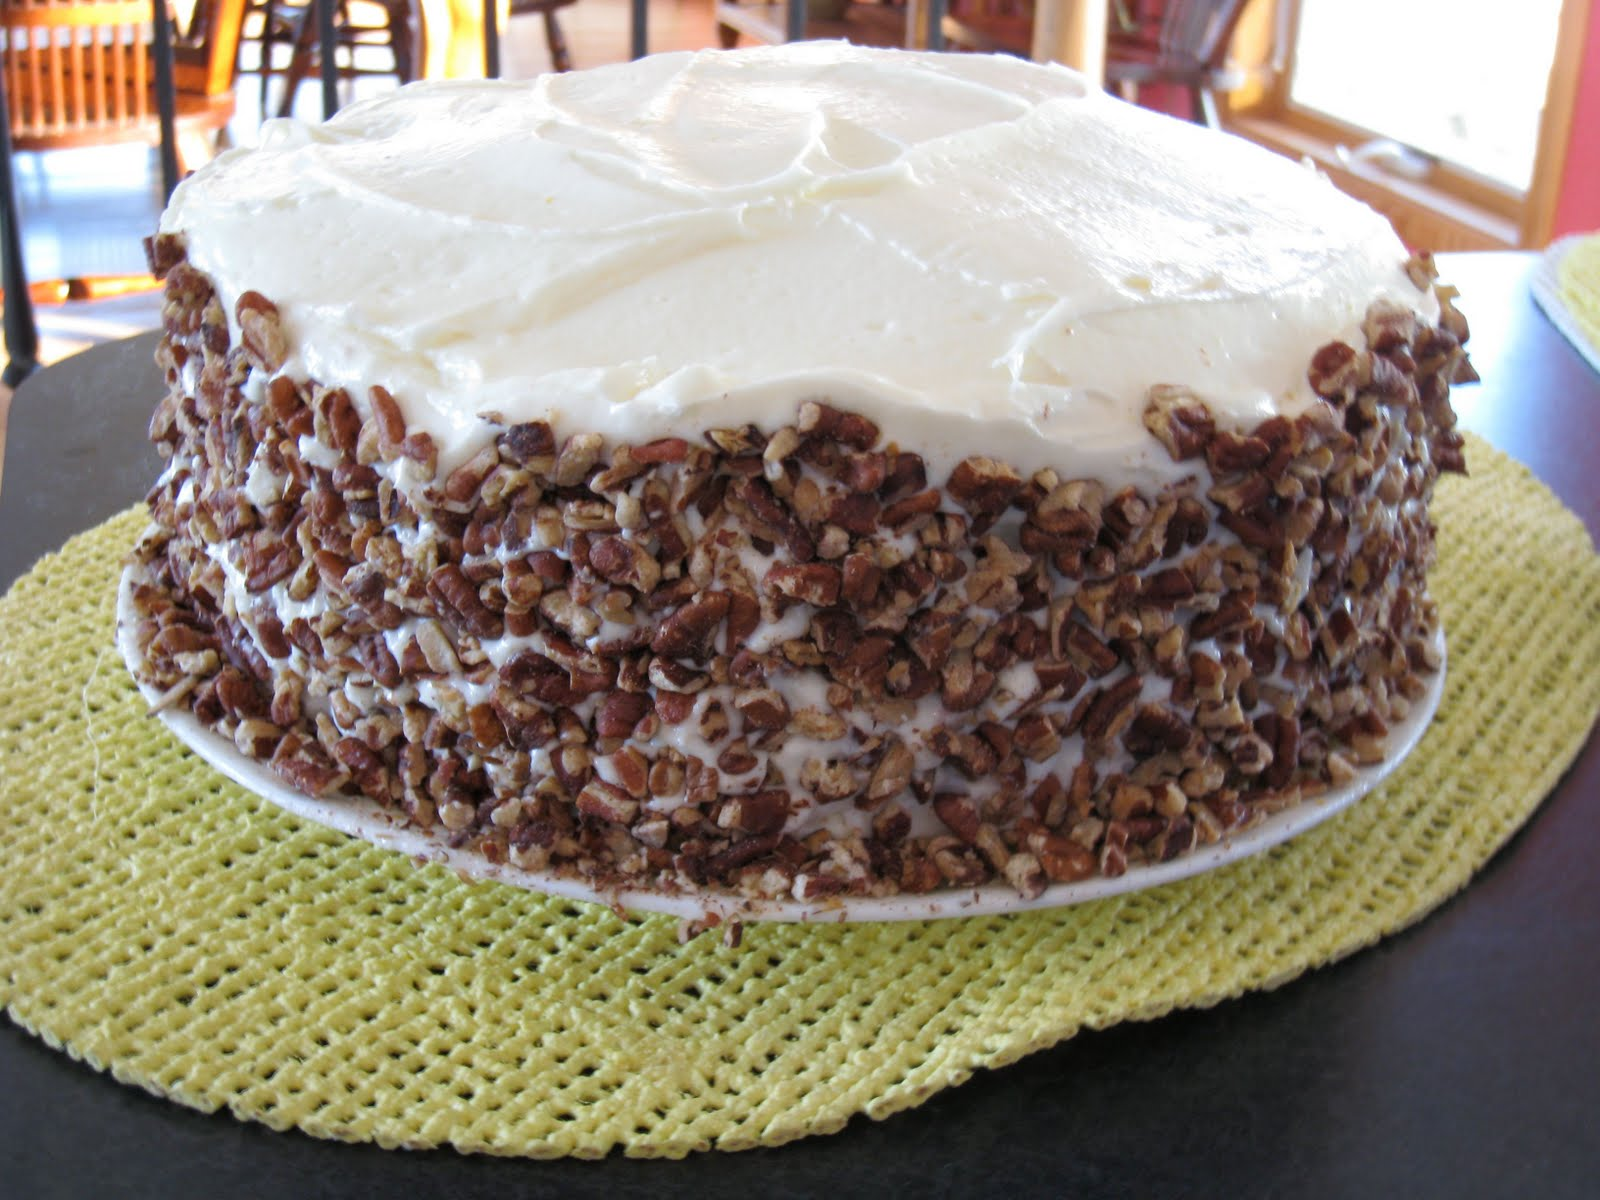 ... 52 Weeks: Cake #18 - Pecan Spice Layer Cake with Cream Cheese Frosting